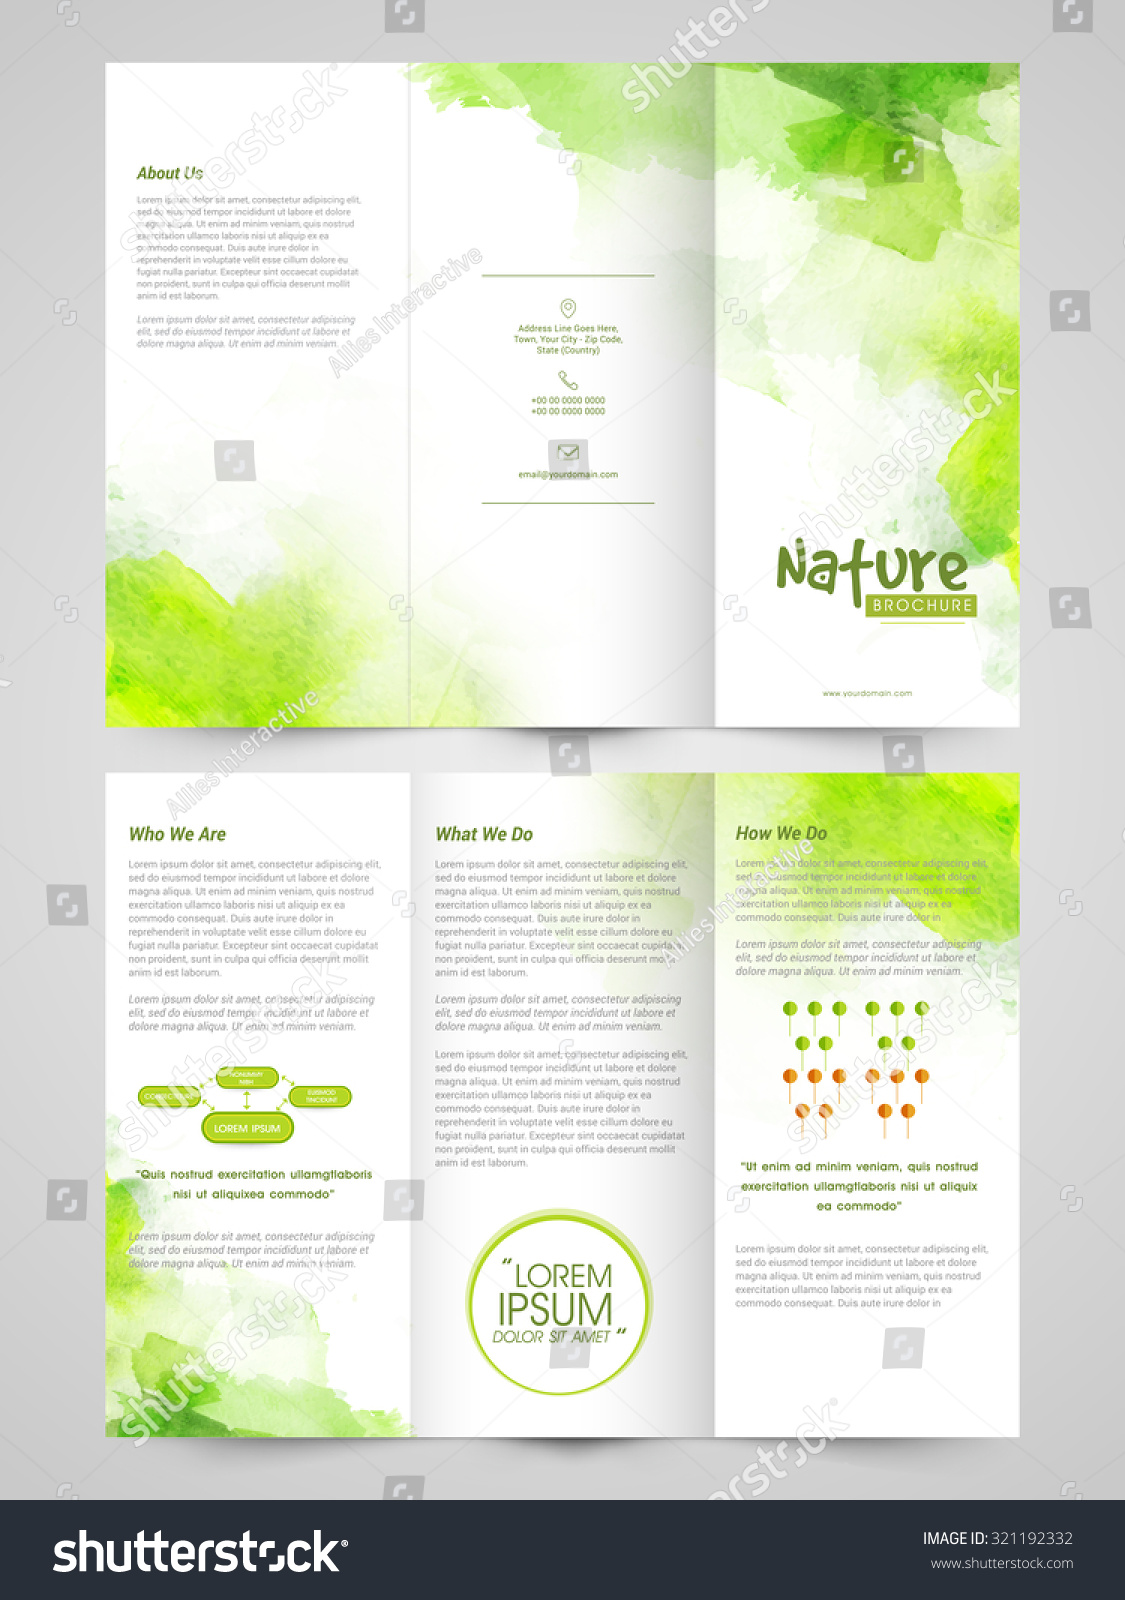 creative ecological trifold brochure template or flyer design with front and back side presentation